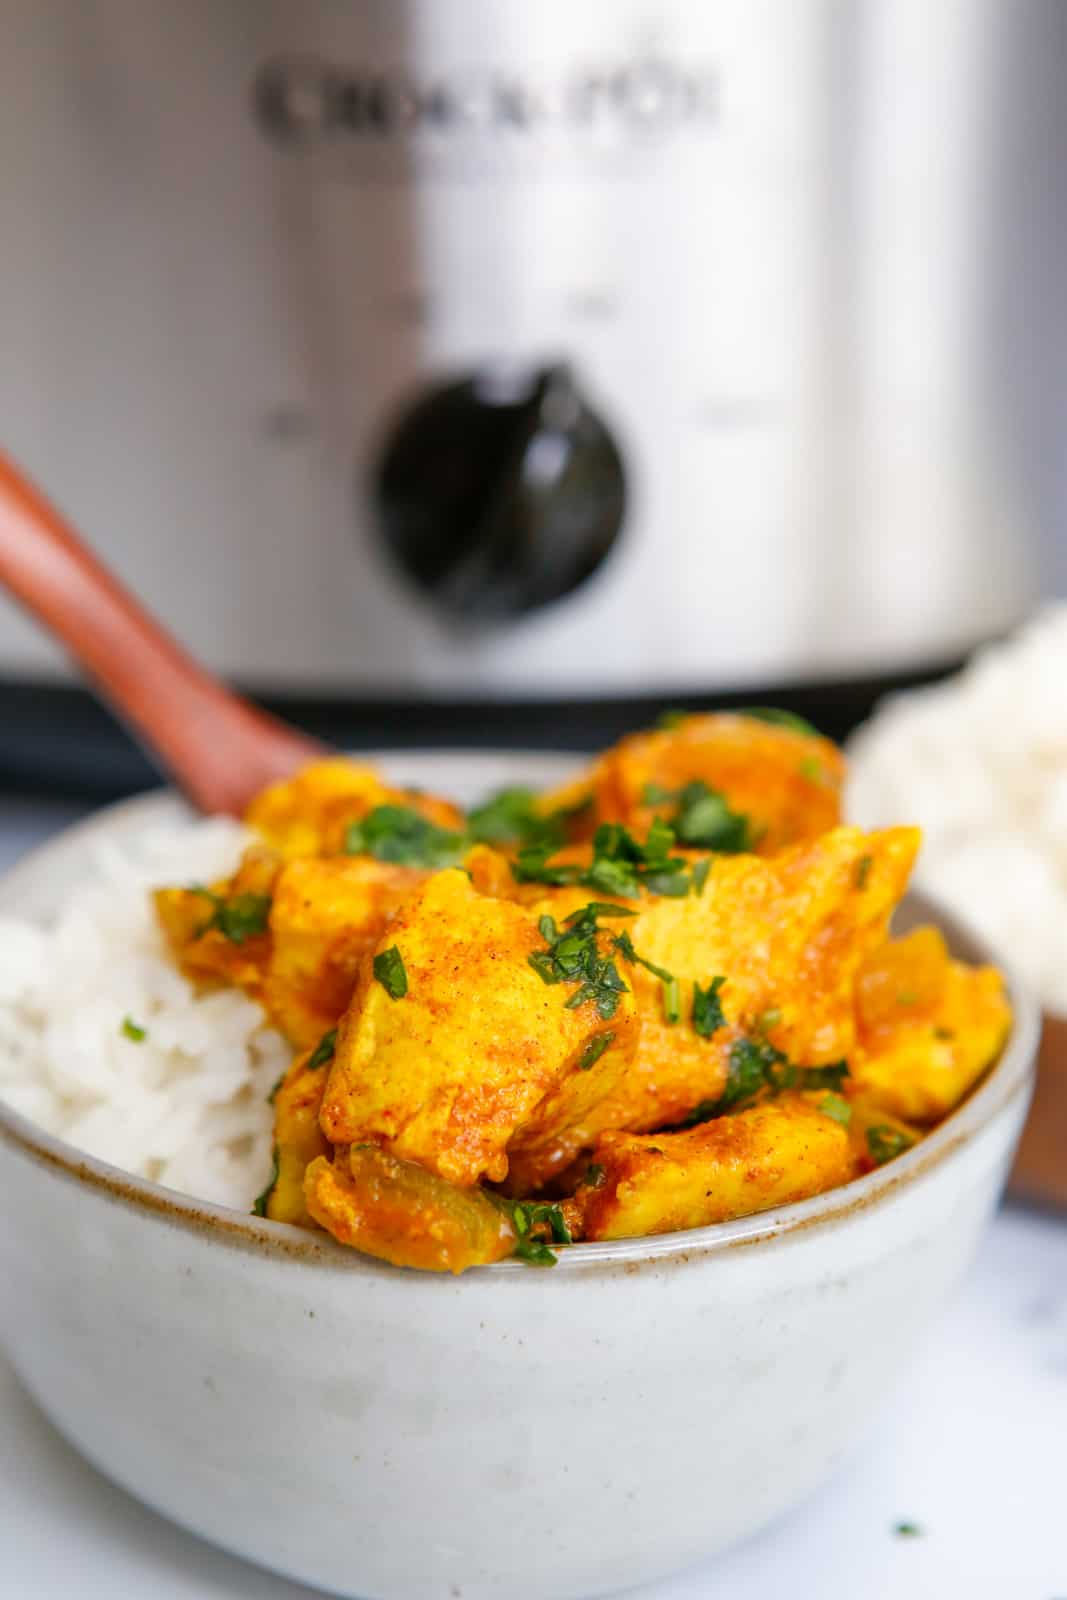 Side view of chicken in bowl with rice